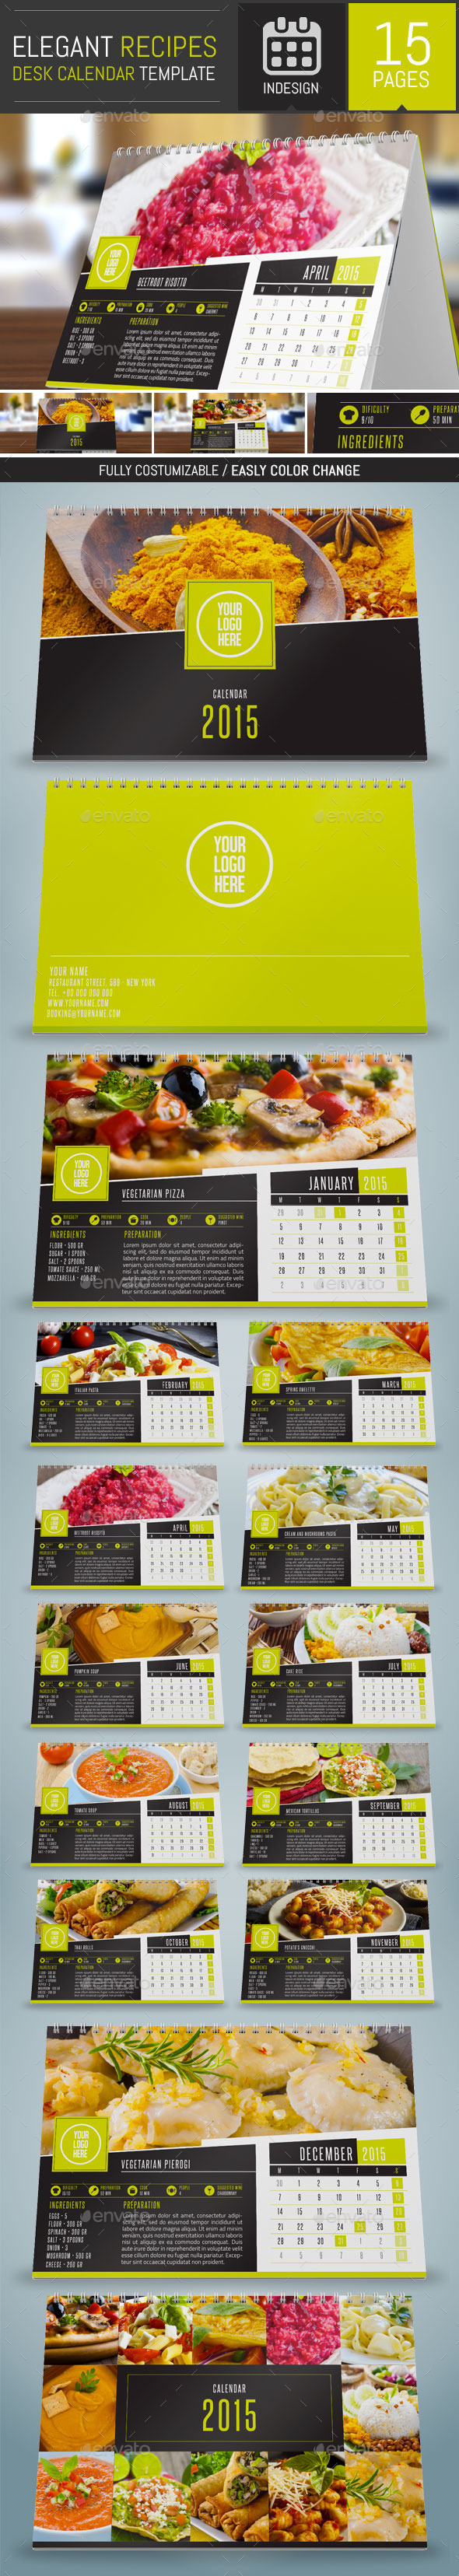 GraphicRiver Elegant Recipes 2015 Desk Calendar Template 9557533